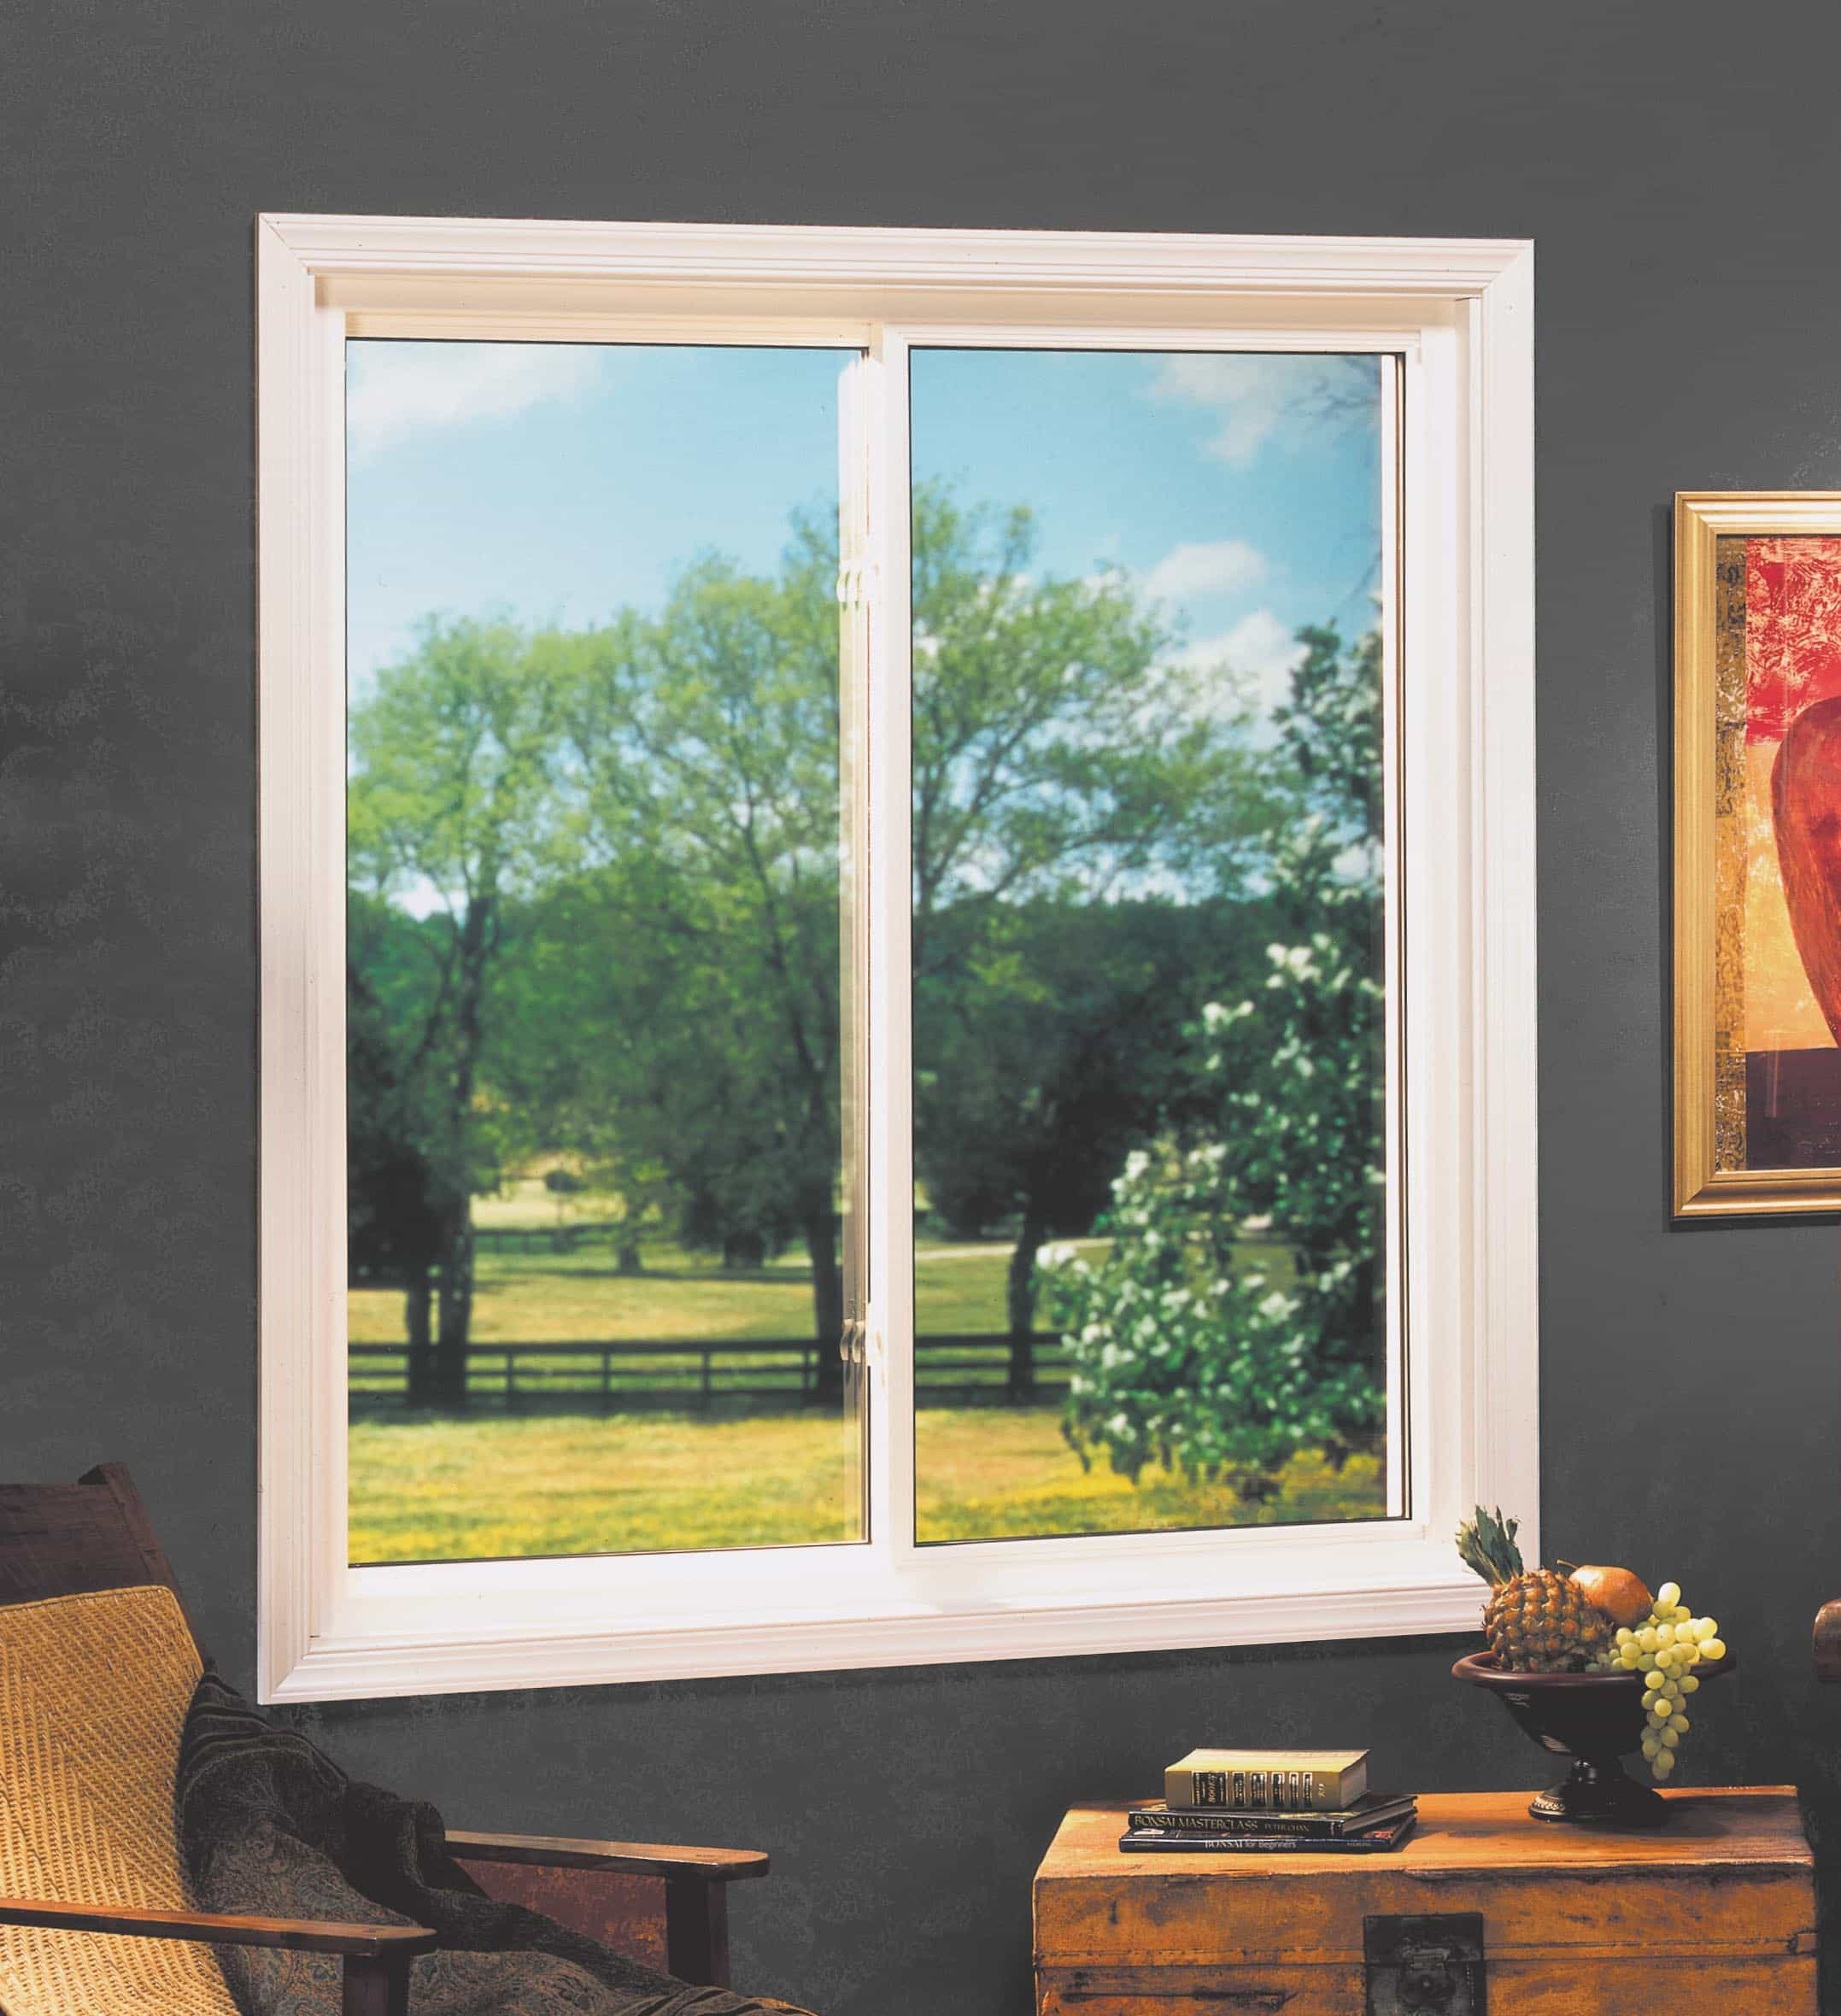 Replacement sliding windows american thermal window for Replacement window design ideas